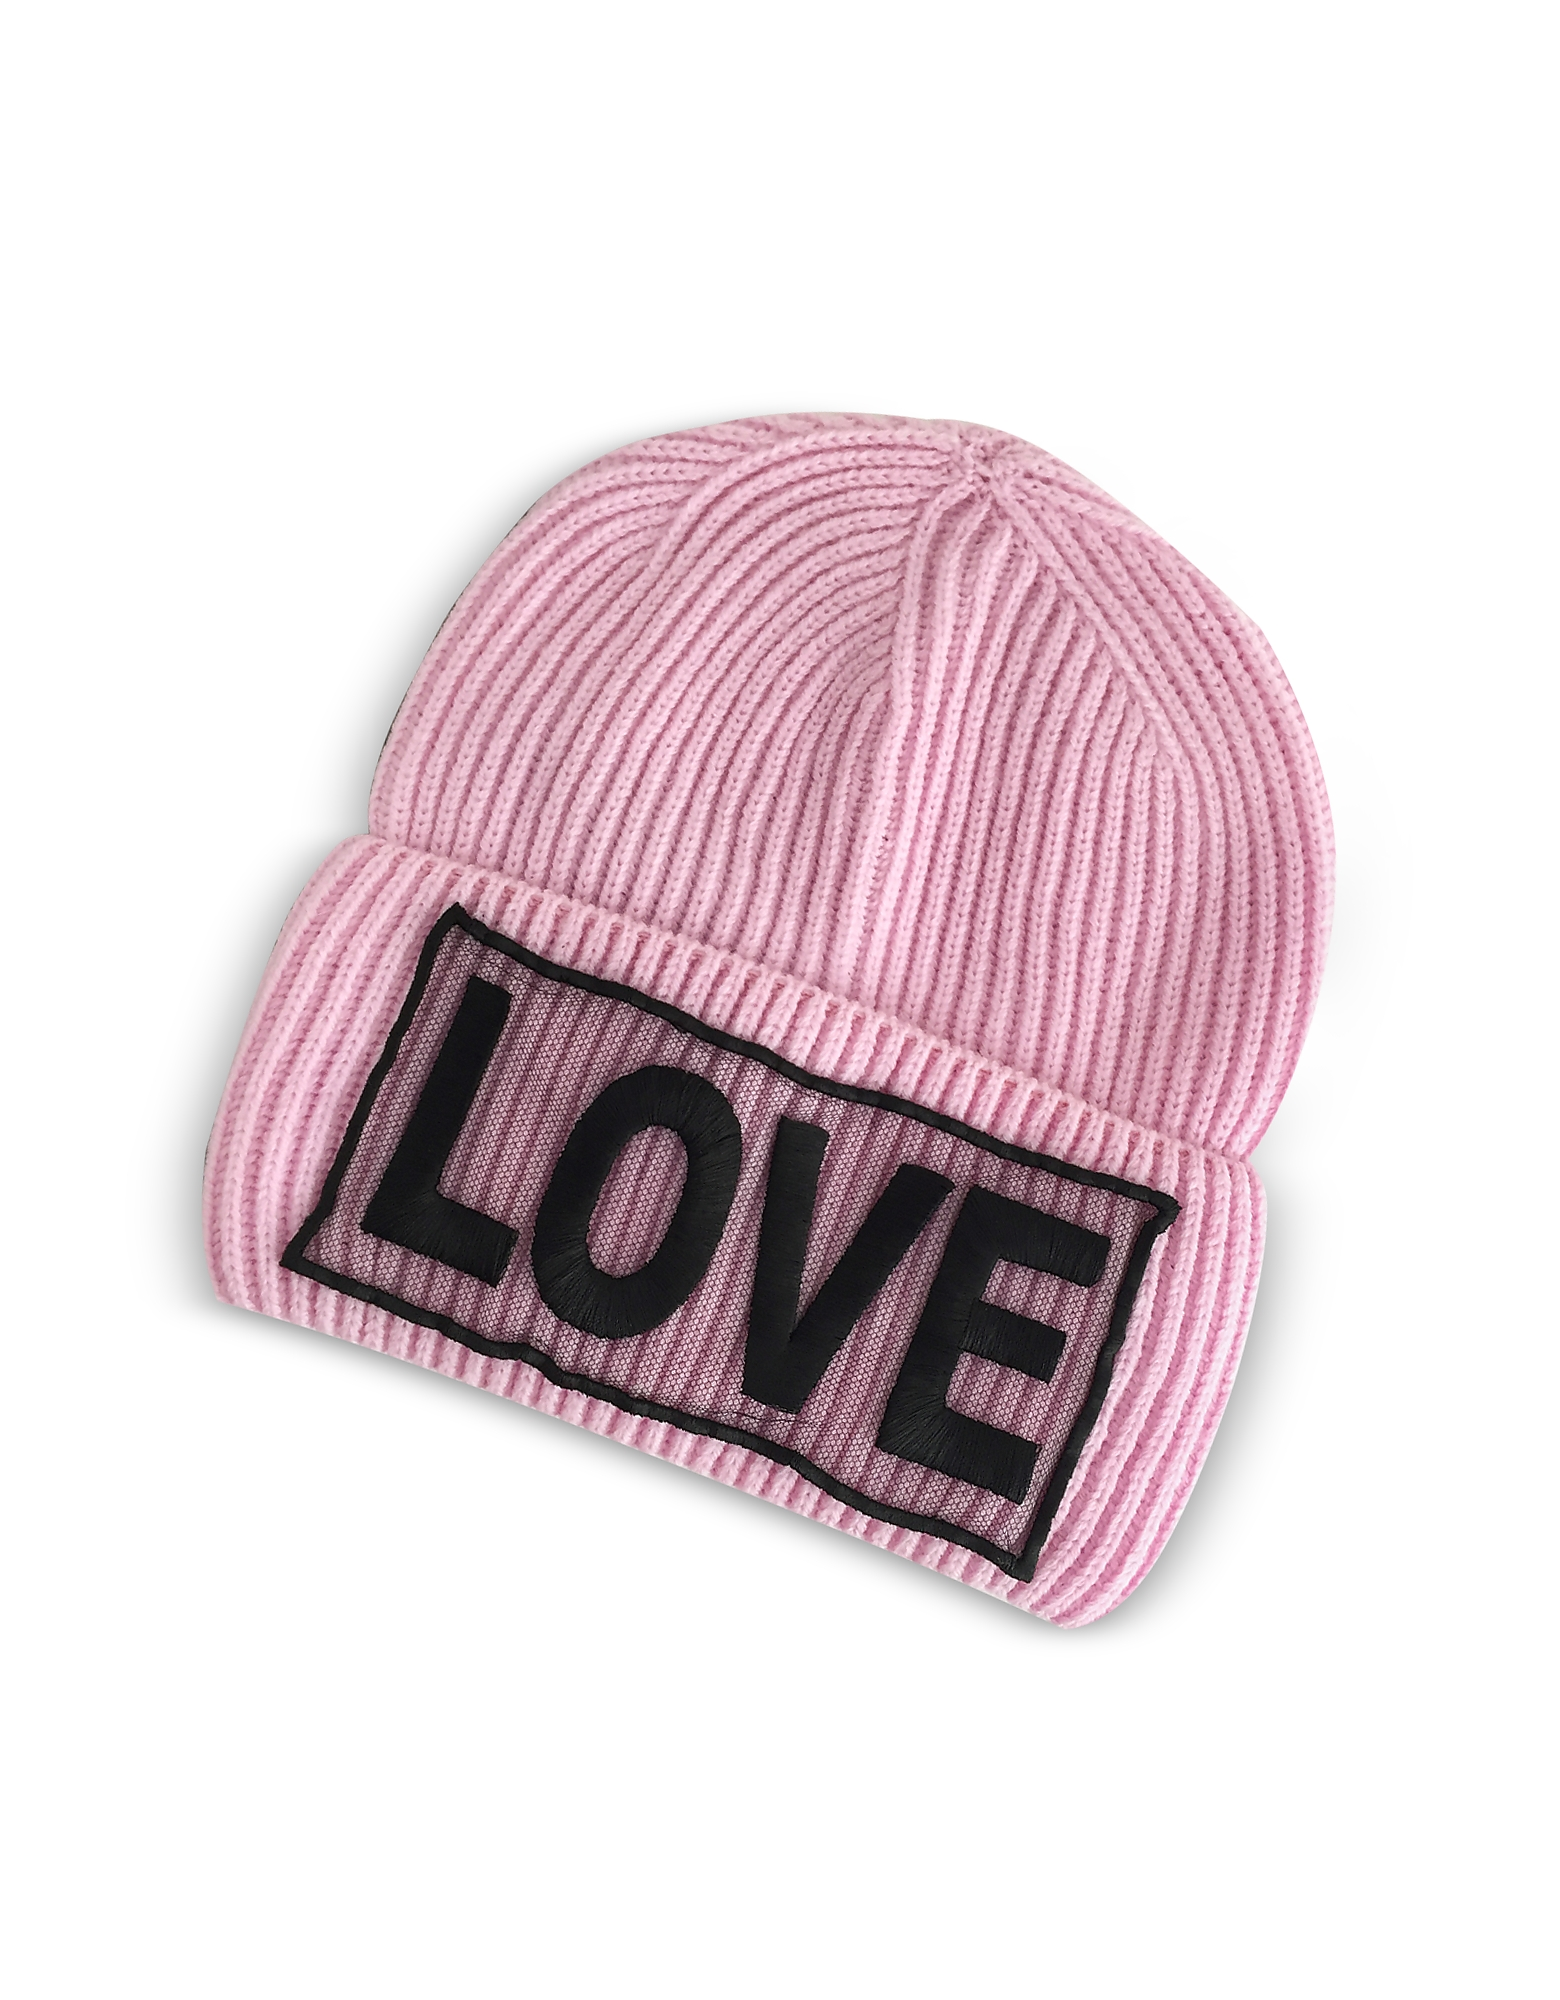 Versace Women's Hats, Love Manifesto Pink Wool Knit Hat